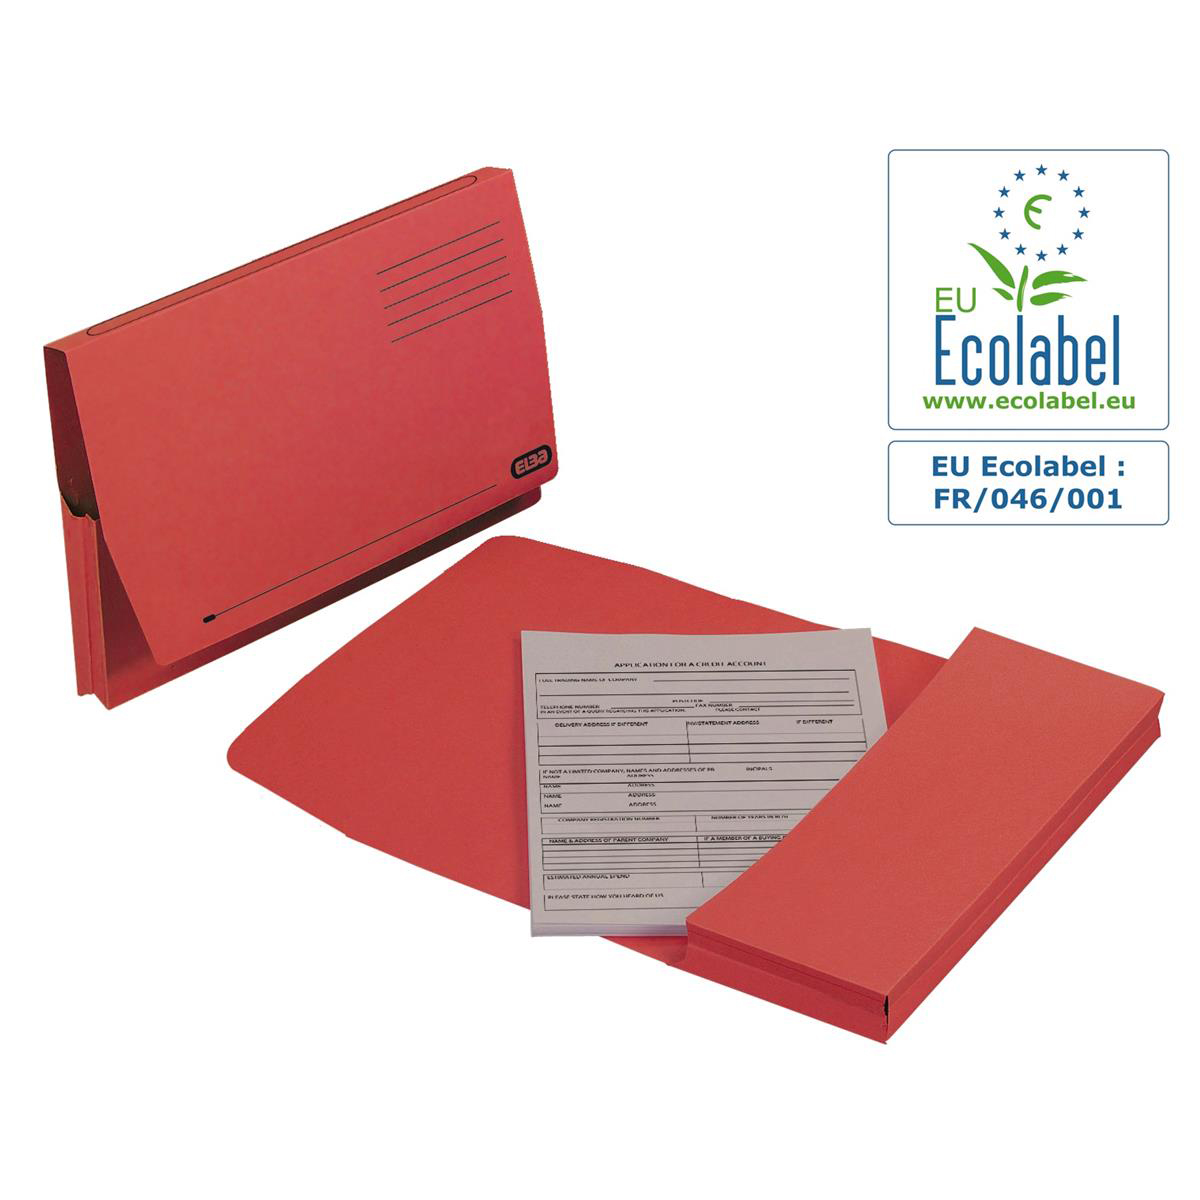 Elba Document Wallet Full Flap 285gsm Capacity 32mm Foolscap Red Ref 100090257 [Pack 50]